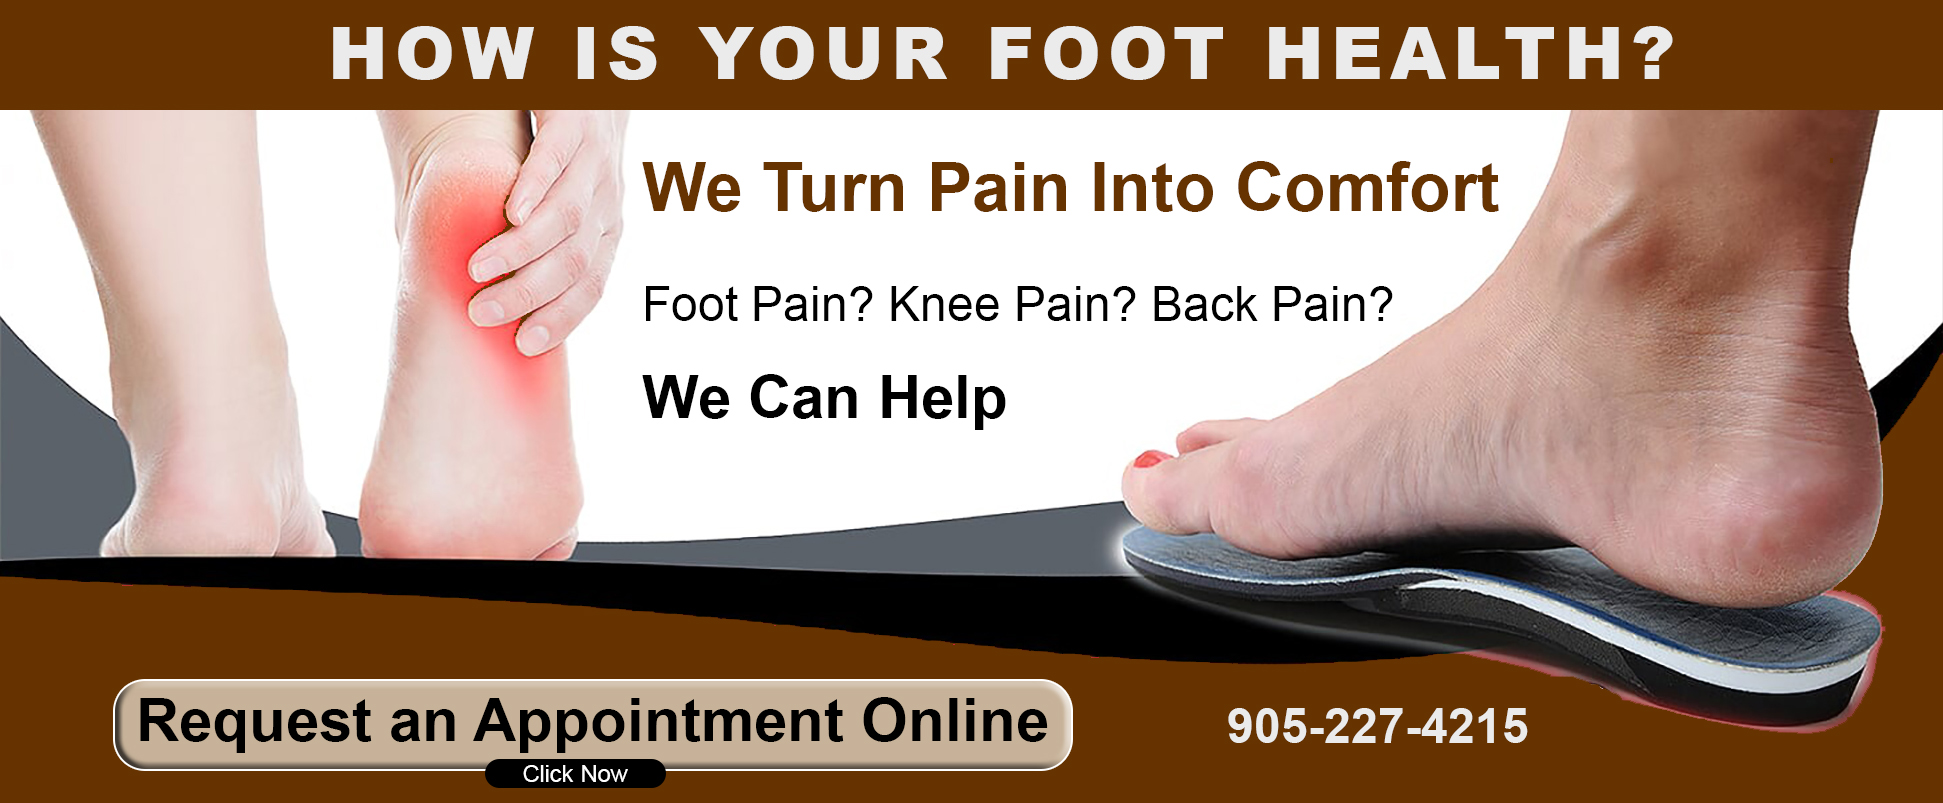 orthotics | compression | bracing | custom shoes | orthopedic footwear | Elio's Foot Comfort Centre